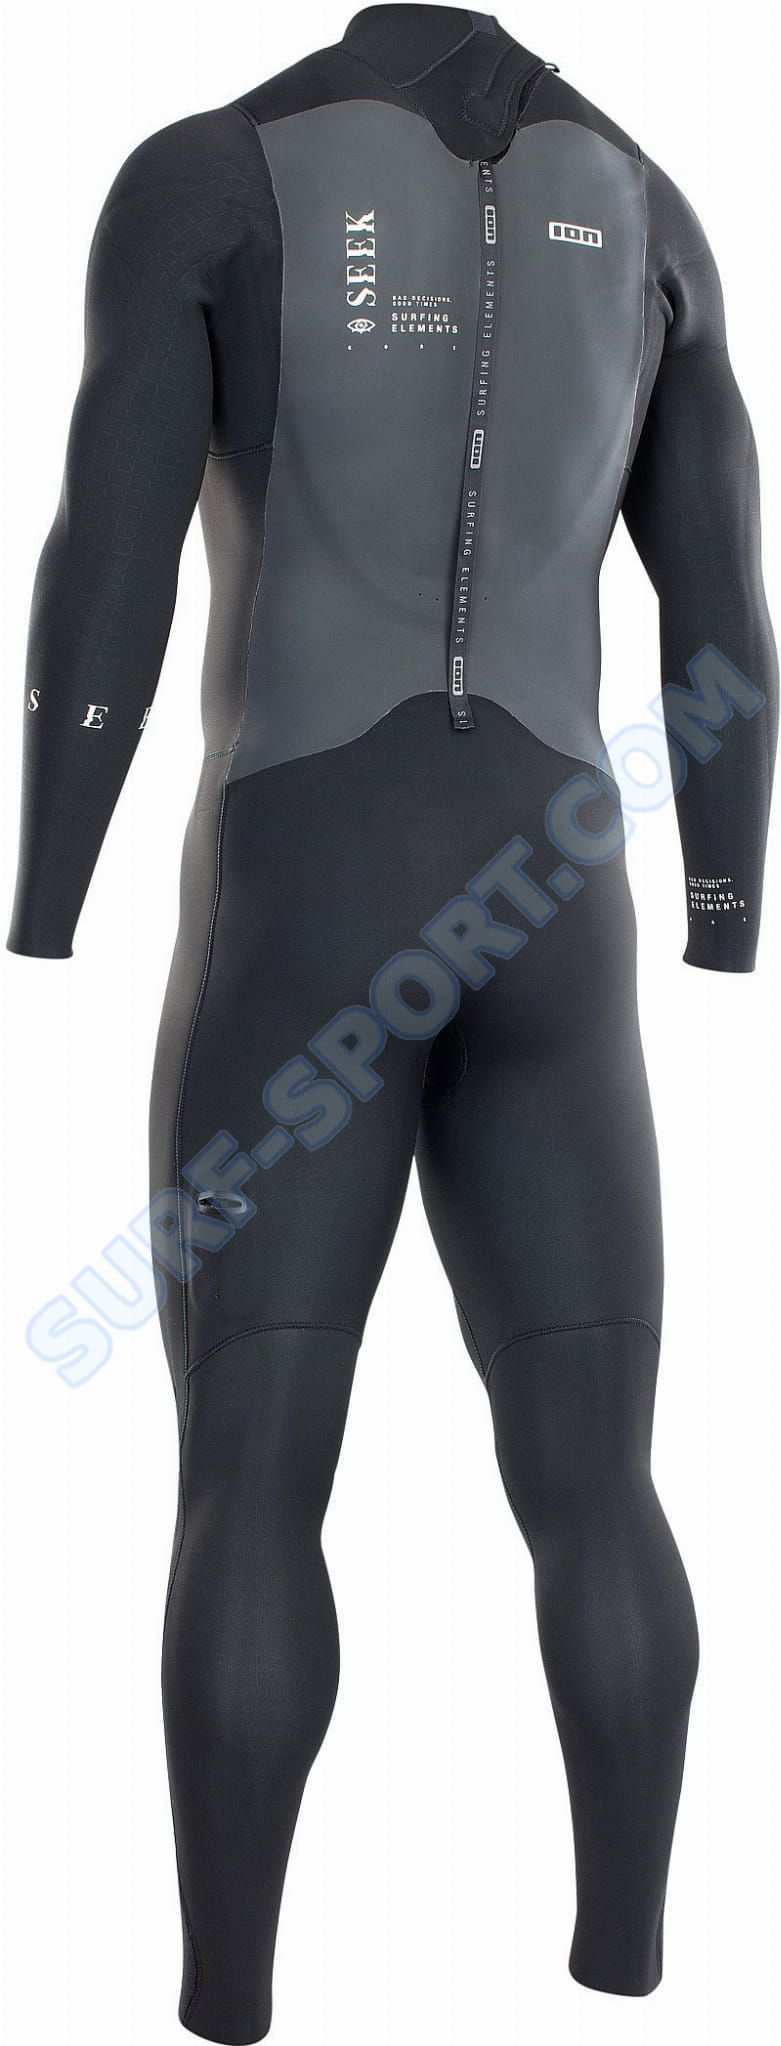 48212-4426_Pianka_ION_2021_Seek_Core_BackZip_Black_Man.jpg